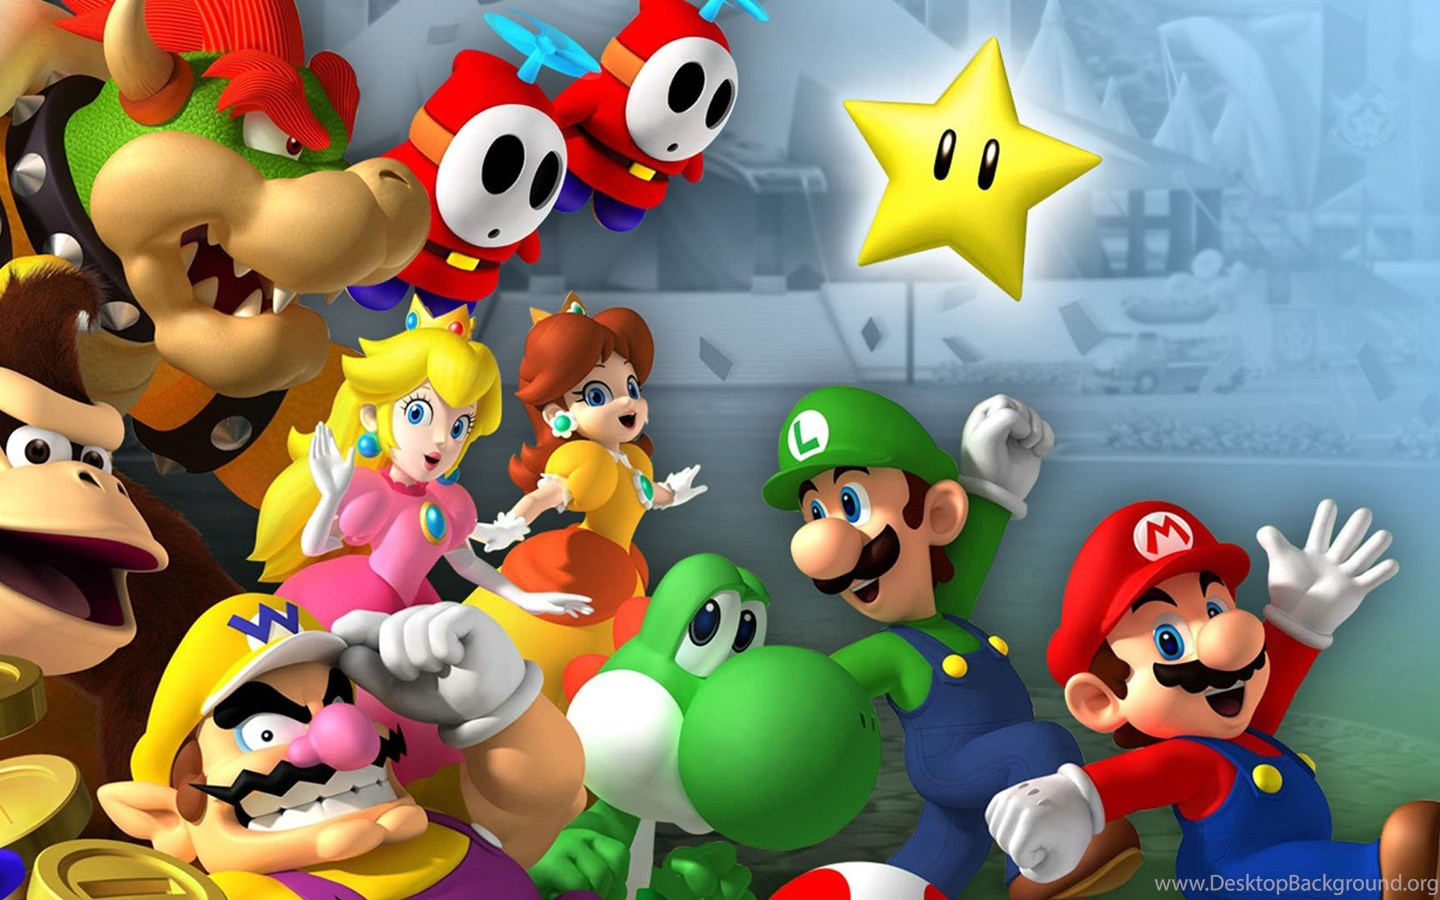 Game Wallpaper Mario And Luigi 1080p Wallpapers For Hd Wallpapers